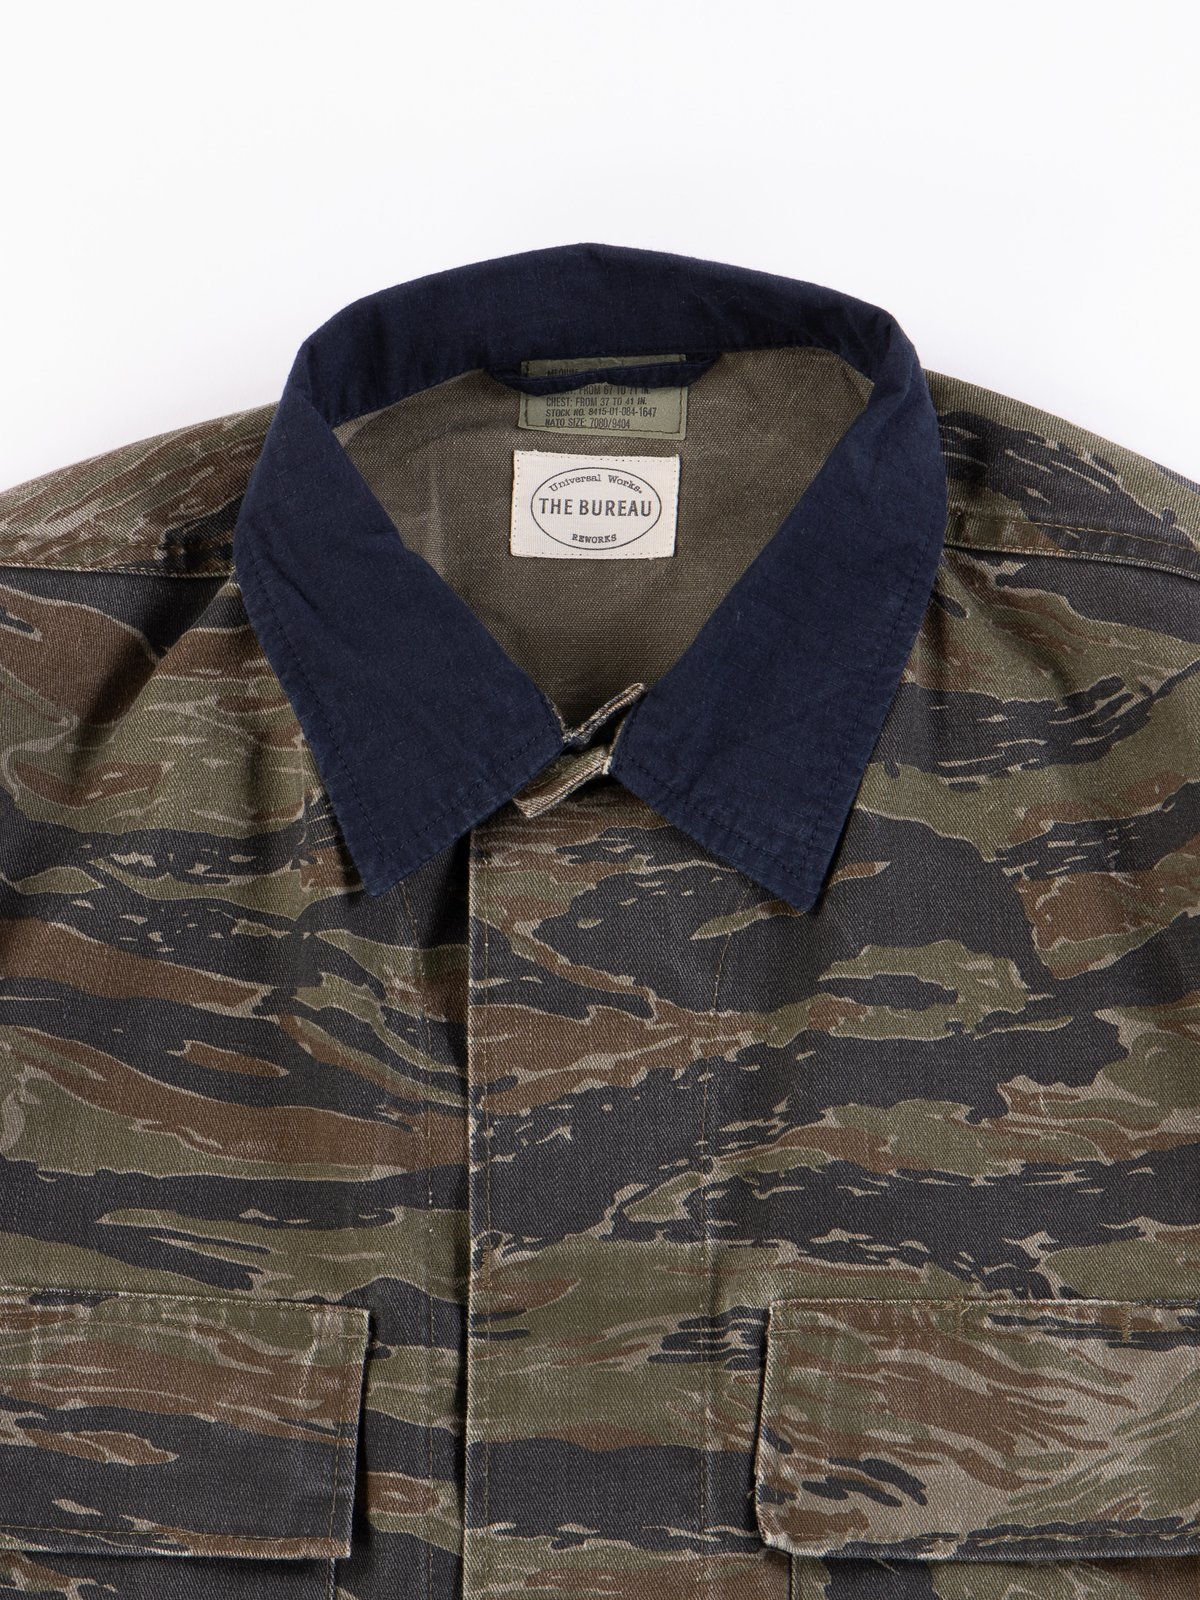 Reworks Camo/Navy Field Jacket - Image 2